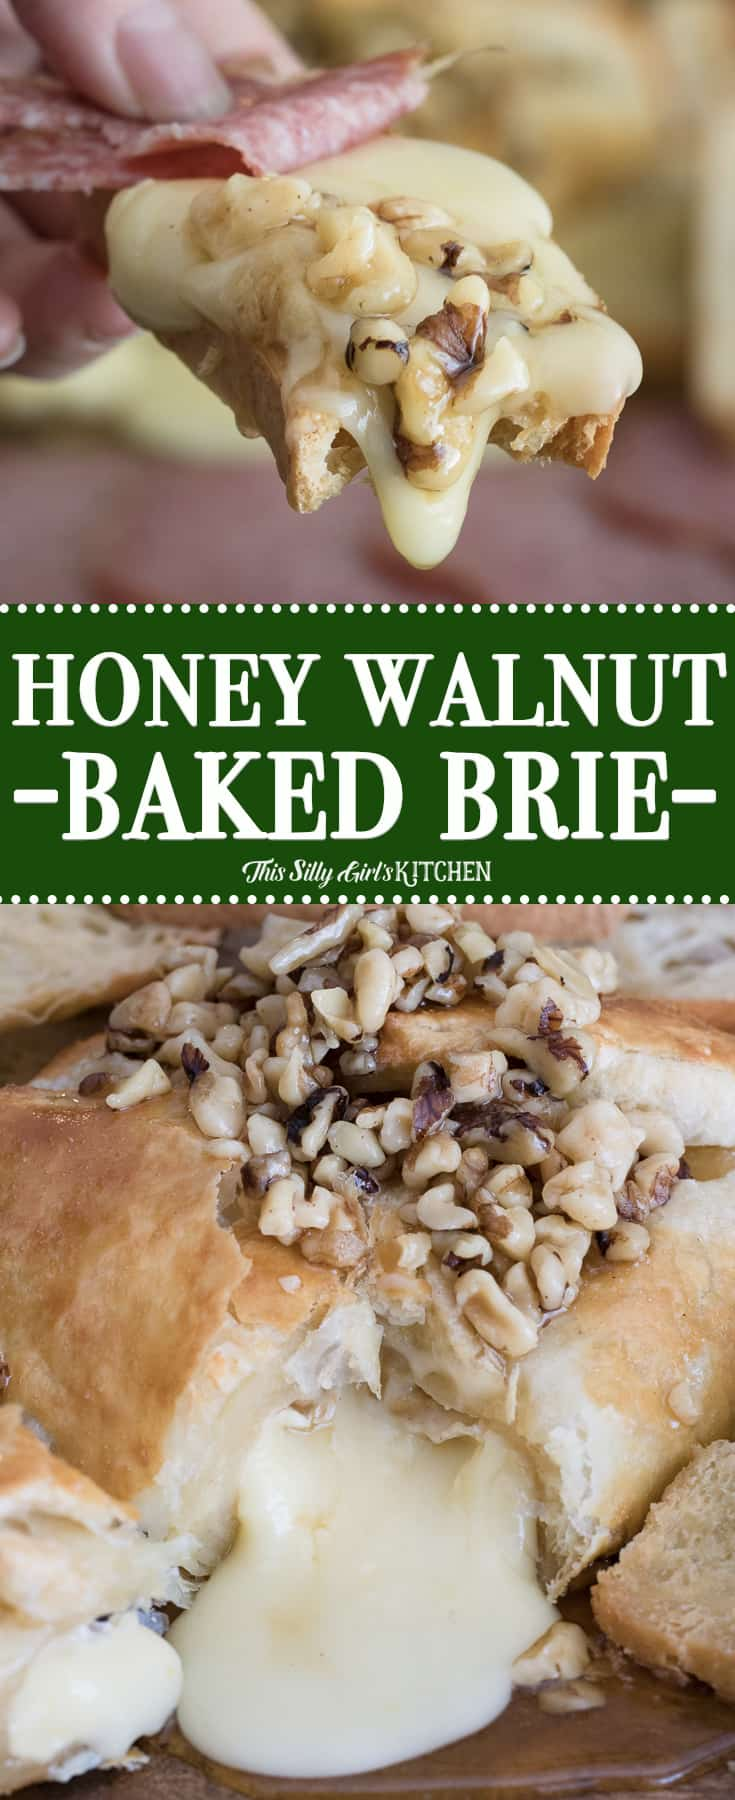 Honey Walnut Baked Brie, ooey gooey cheese wrapped in puff pastry and baked until golden brown, topped with honey and walnuts. #Recipe from ThisSillyGirlsKitchen.com #bakedbrie #christmas #appetizer #puffpastry